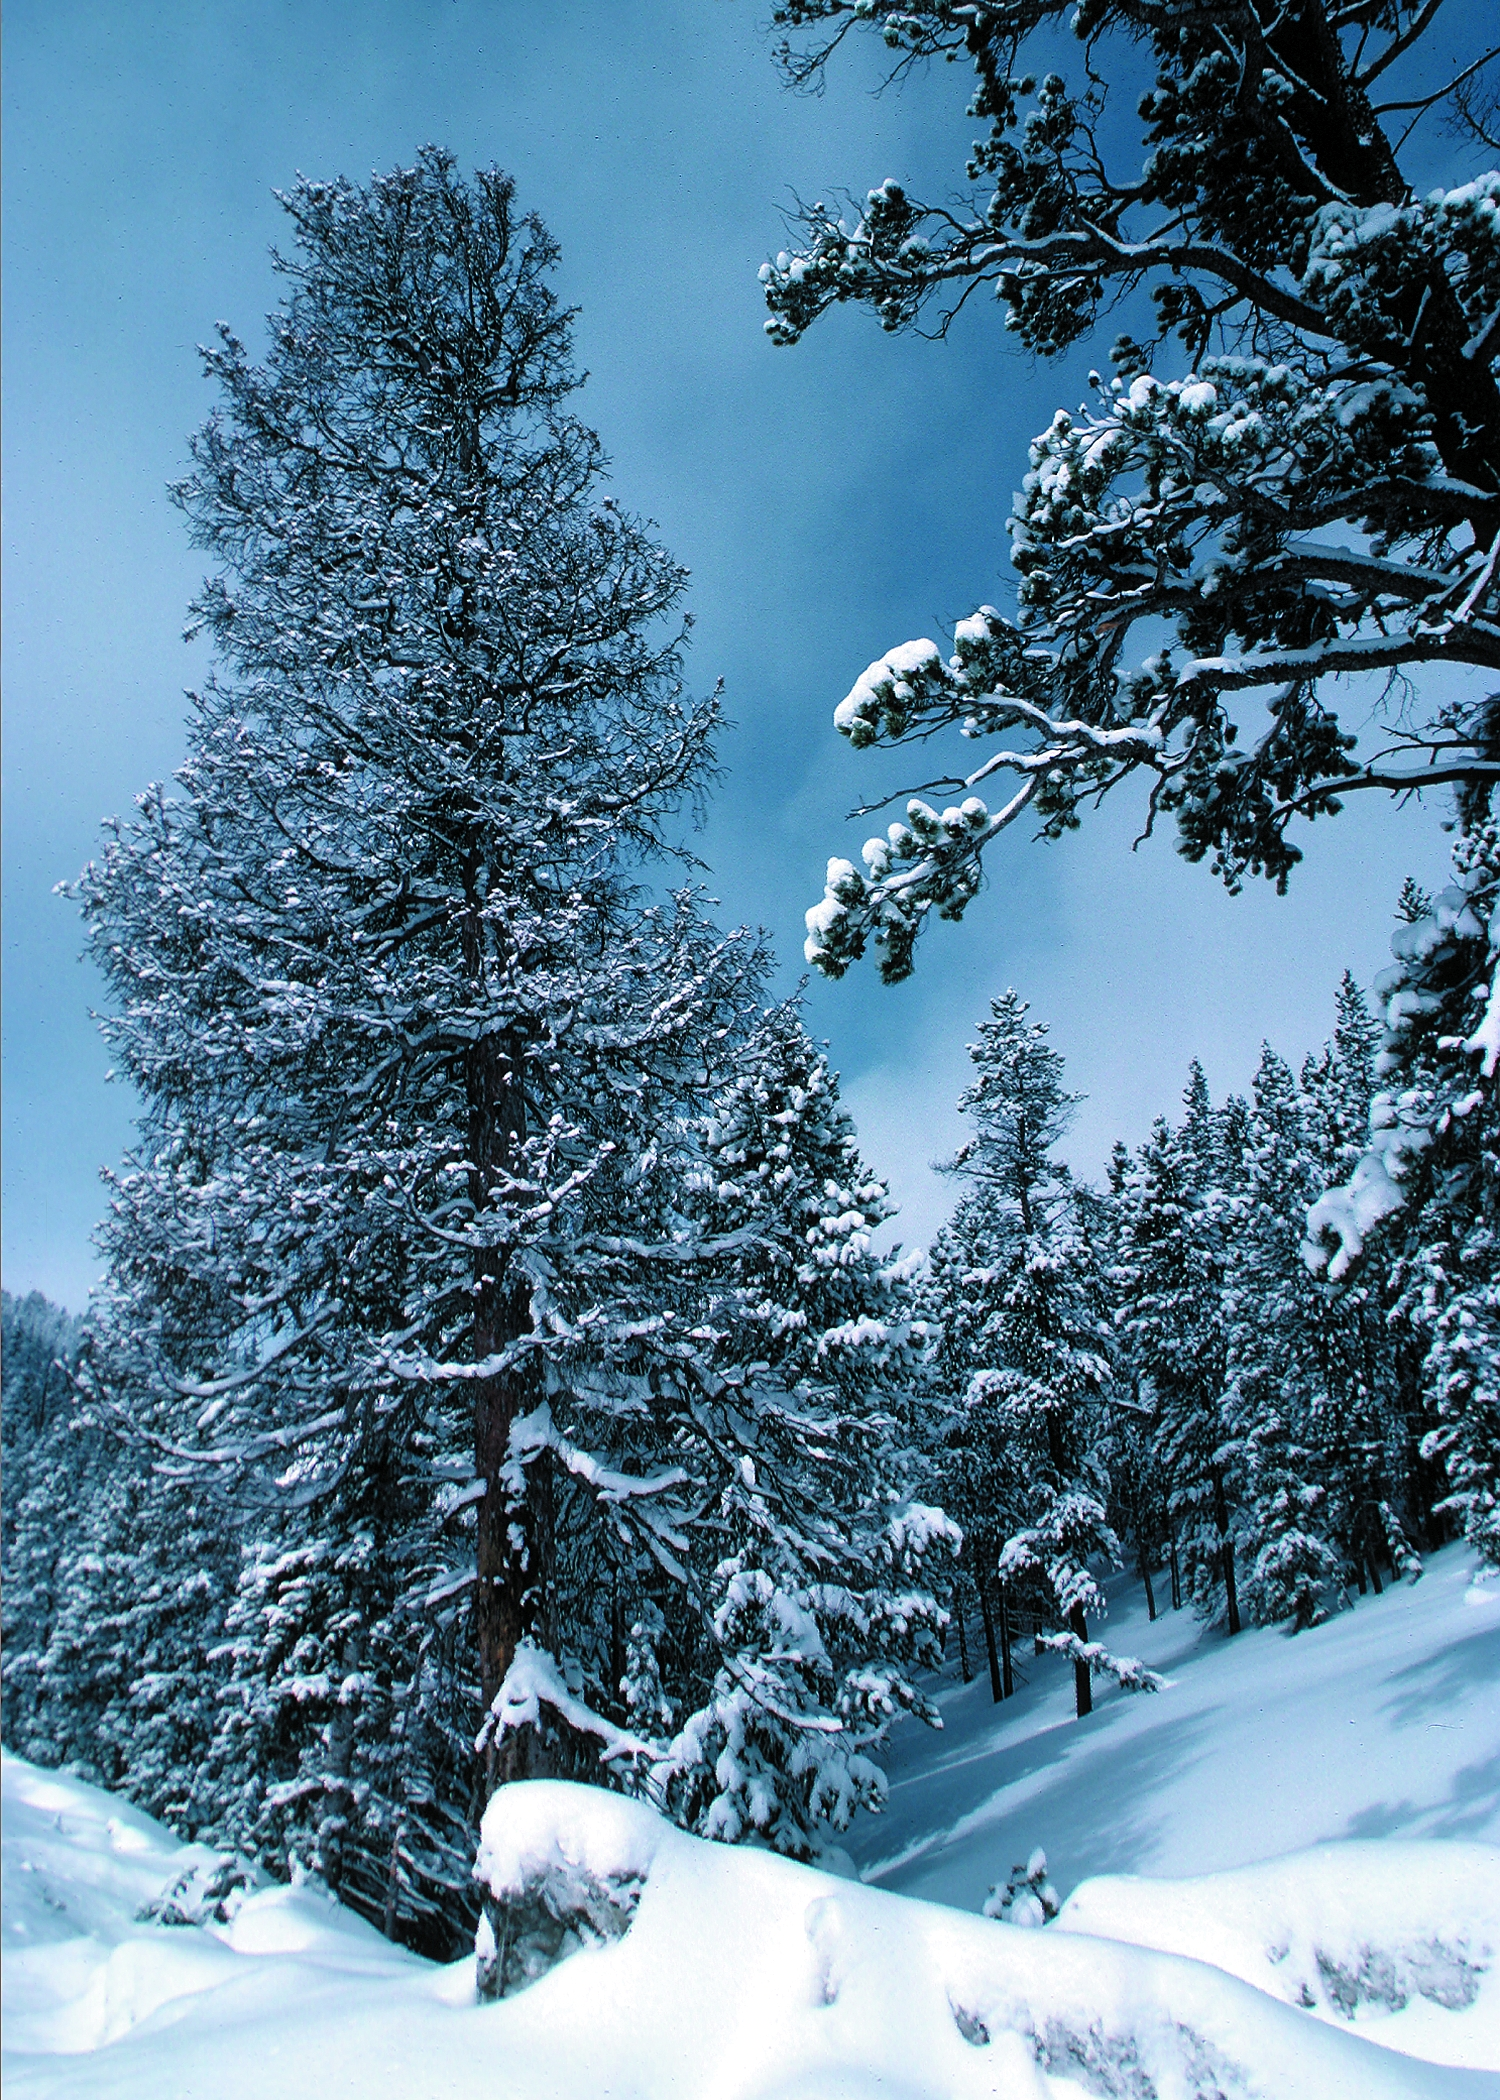 http://upload.wikimedia.org/wikipedia/commons/0/01/Snow_in_Colarado_in_the_United_States_of_America.jpeg